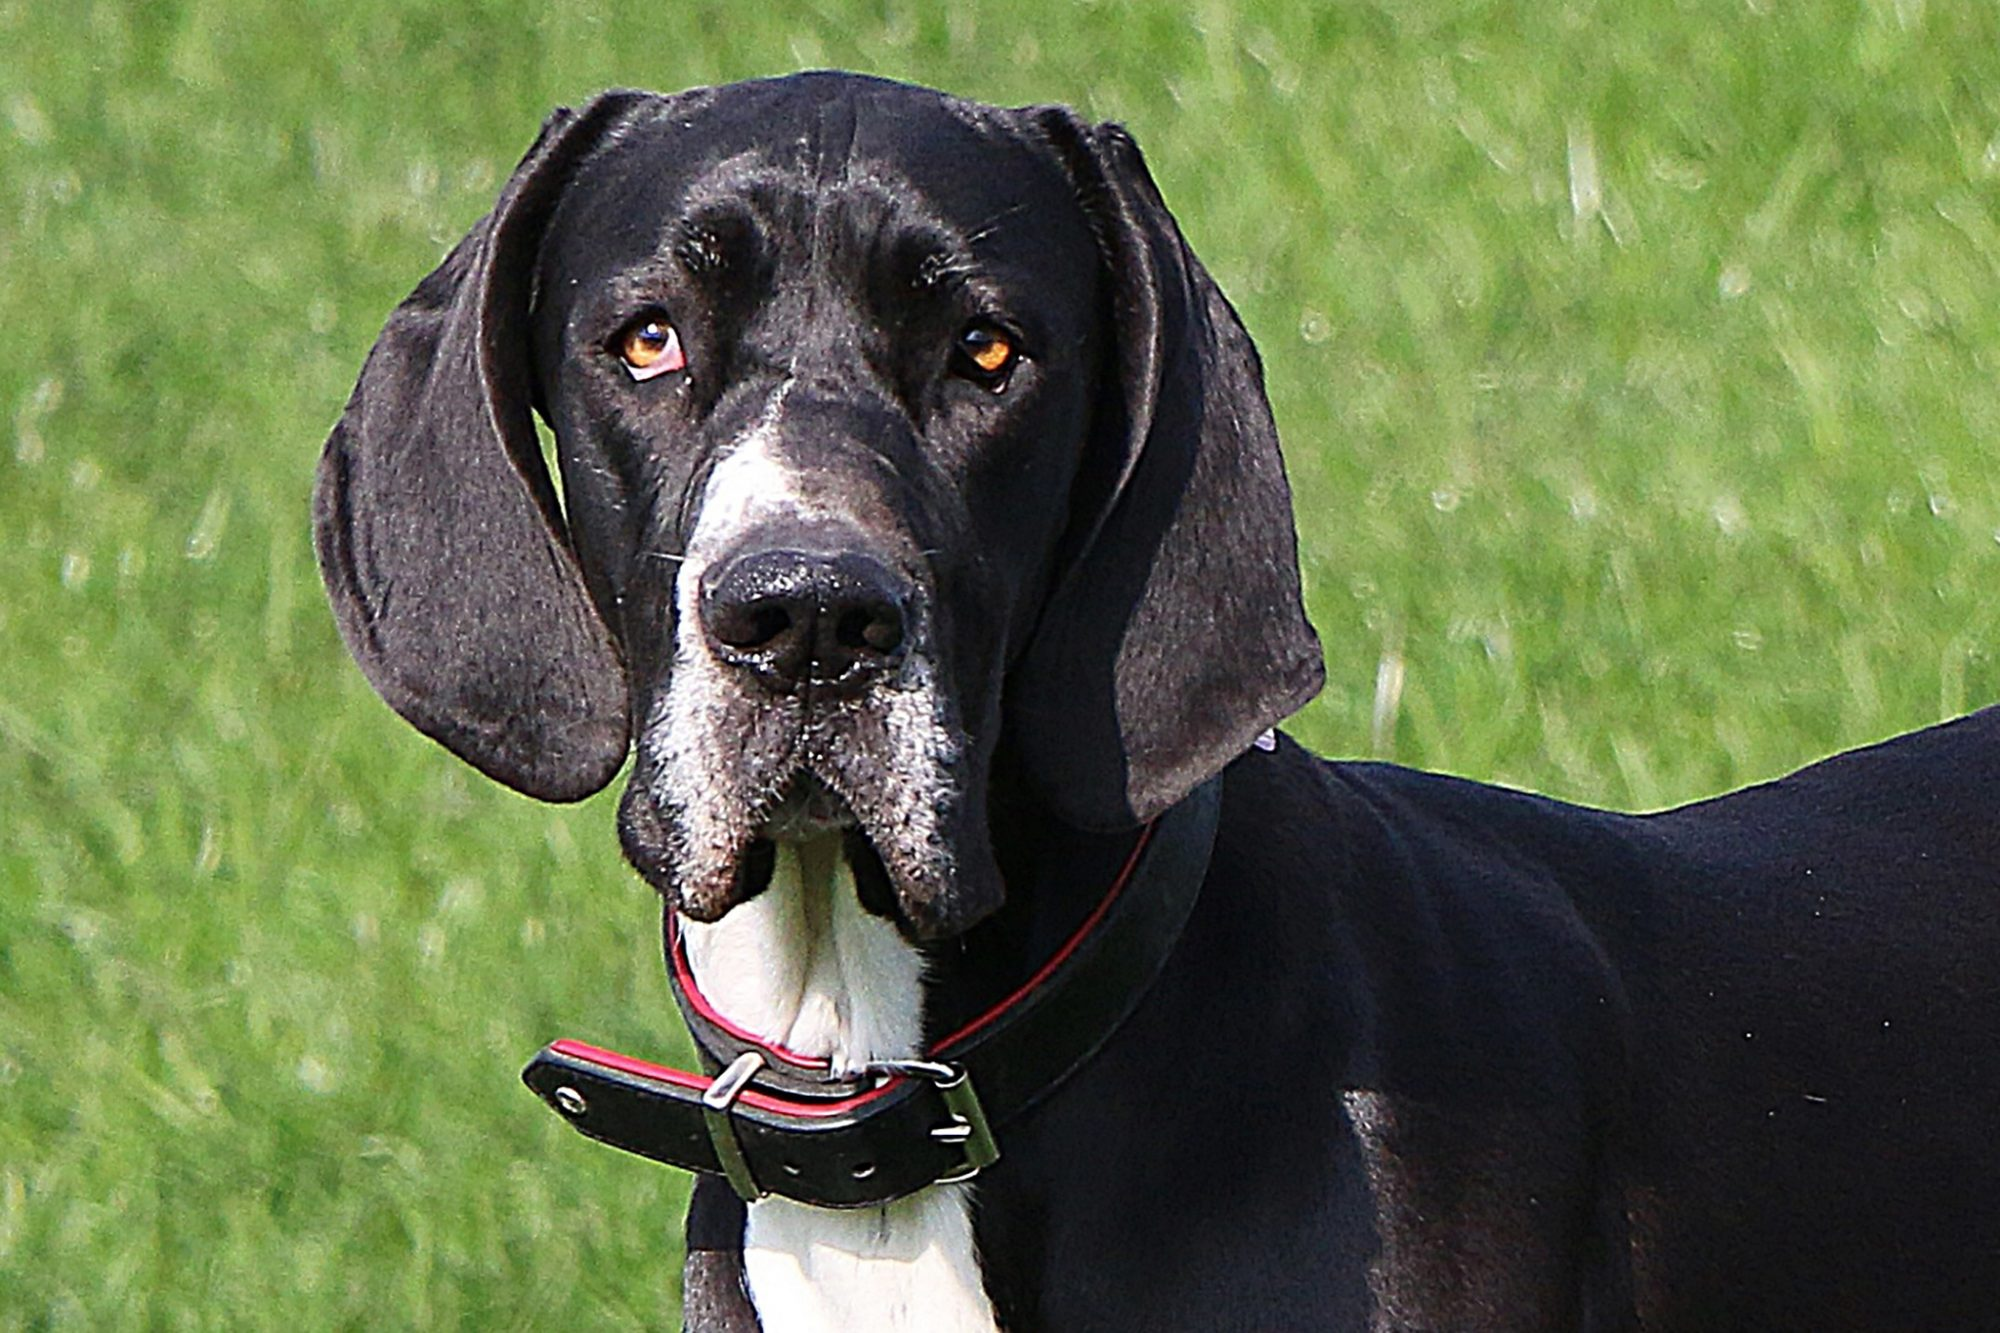 black and white great dane standing in the grass